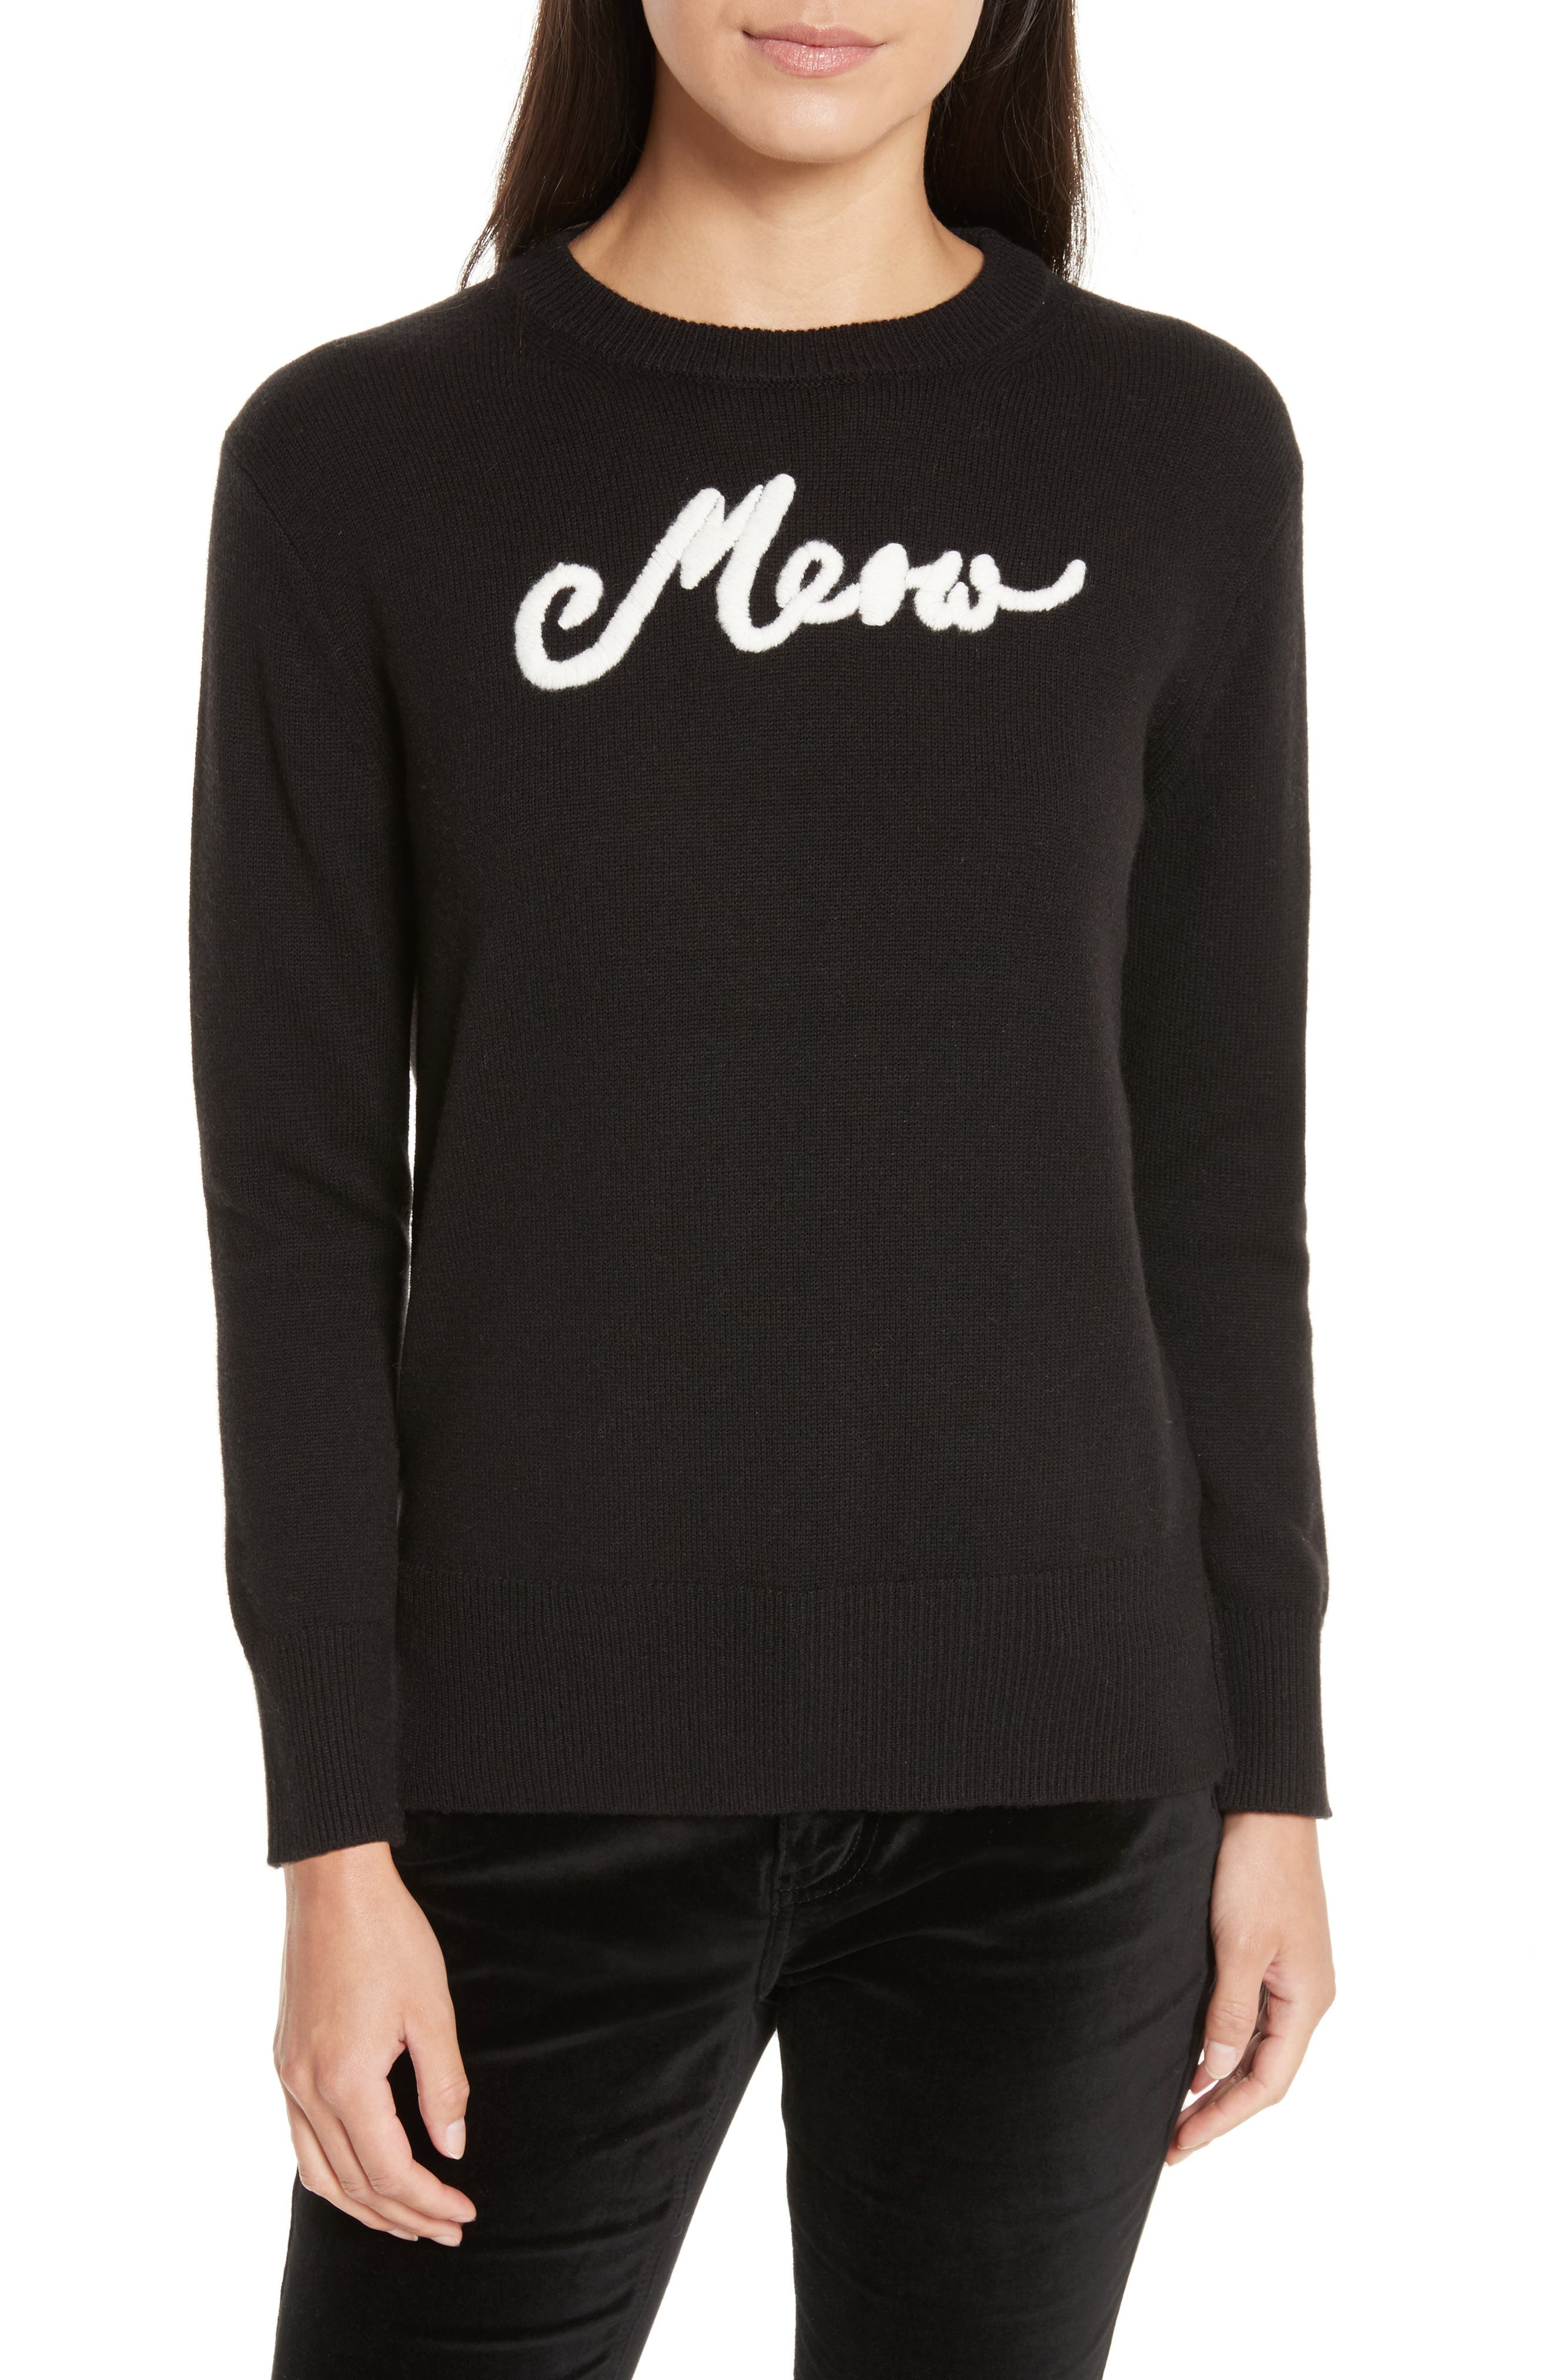 meow sweater,                             Main thumbnail 1, color,                             001